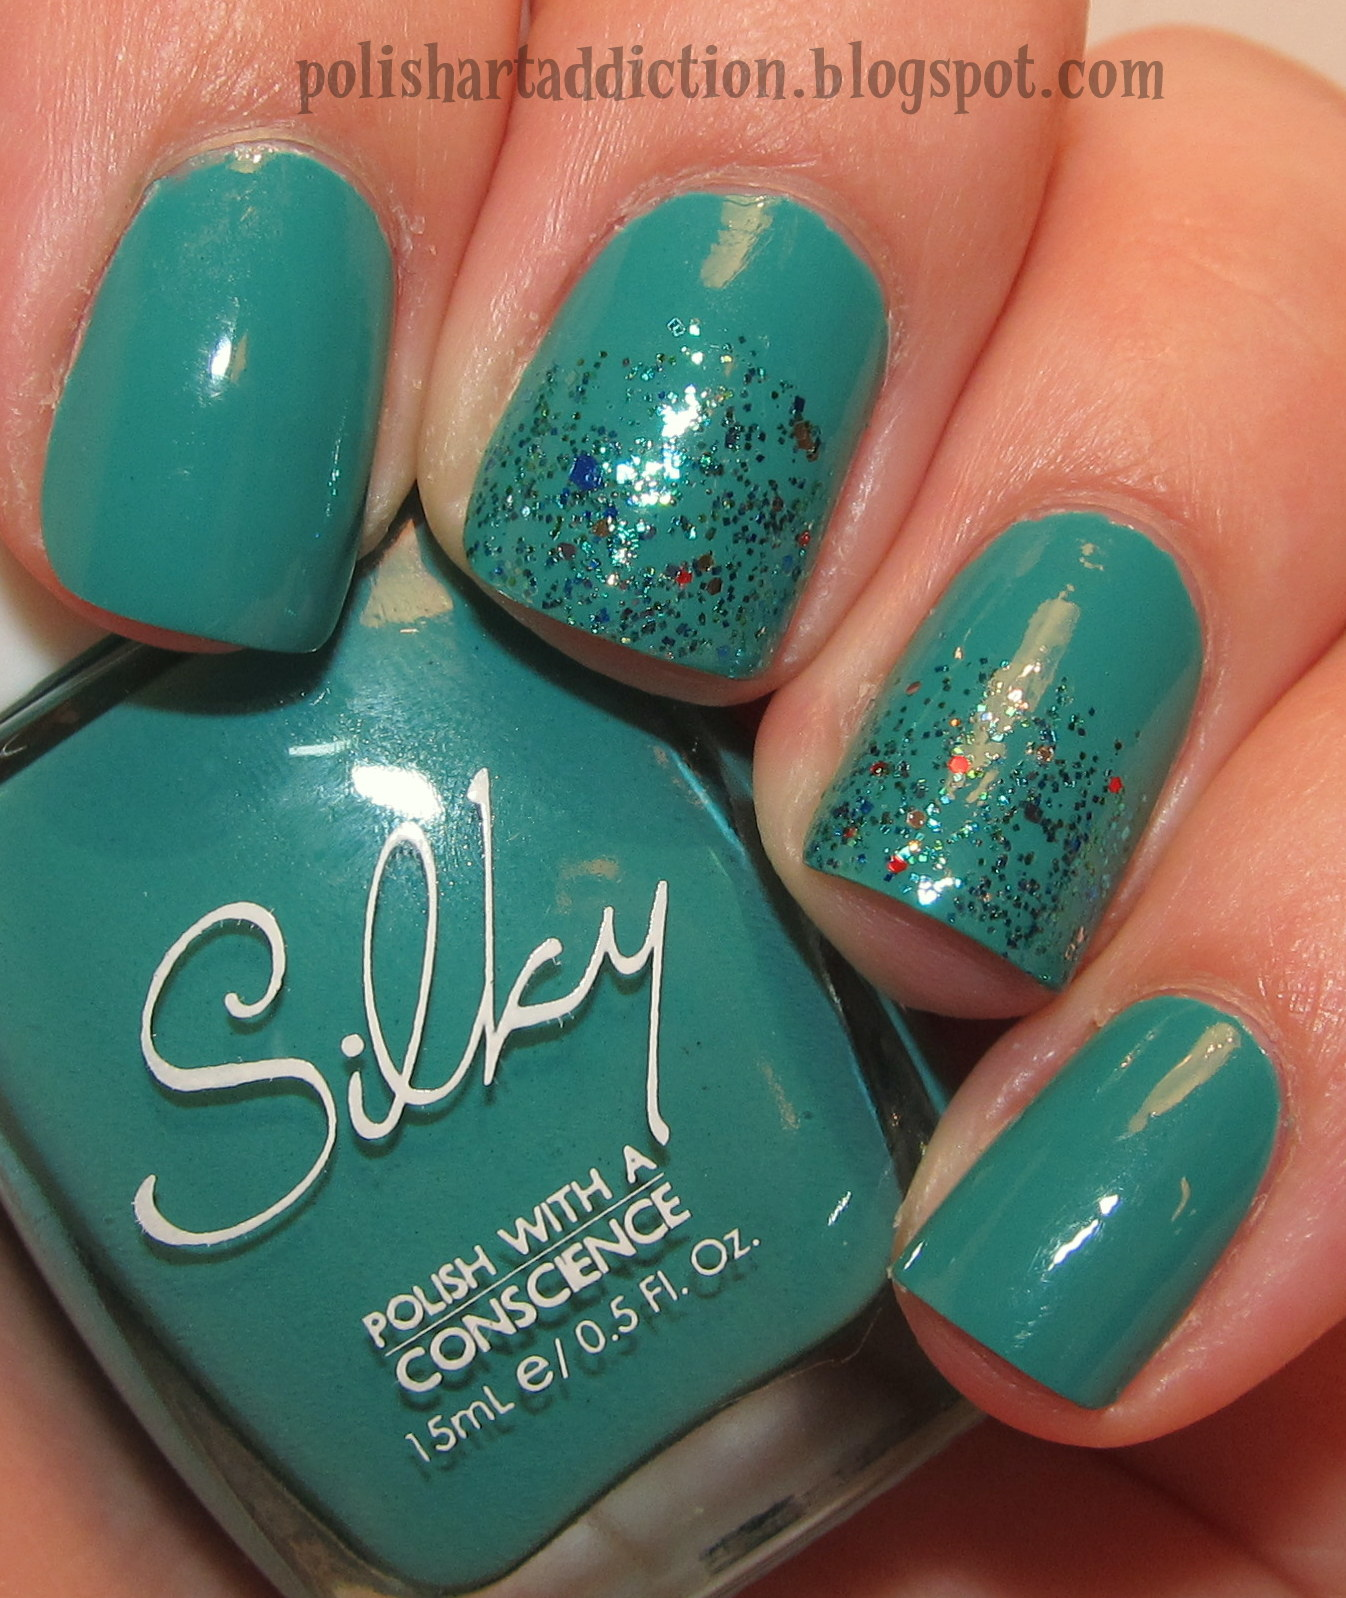 Silky Polish Review & Giveaway